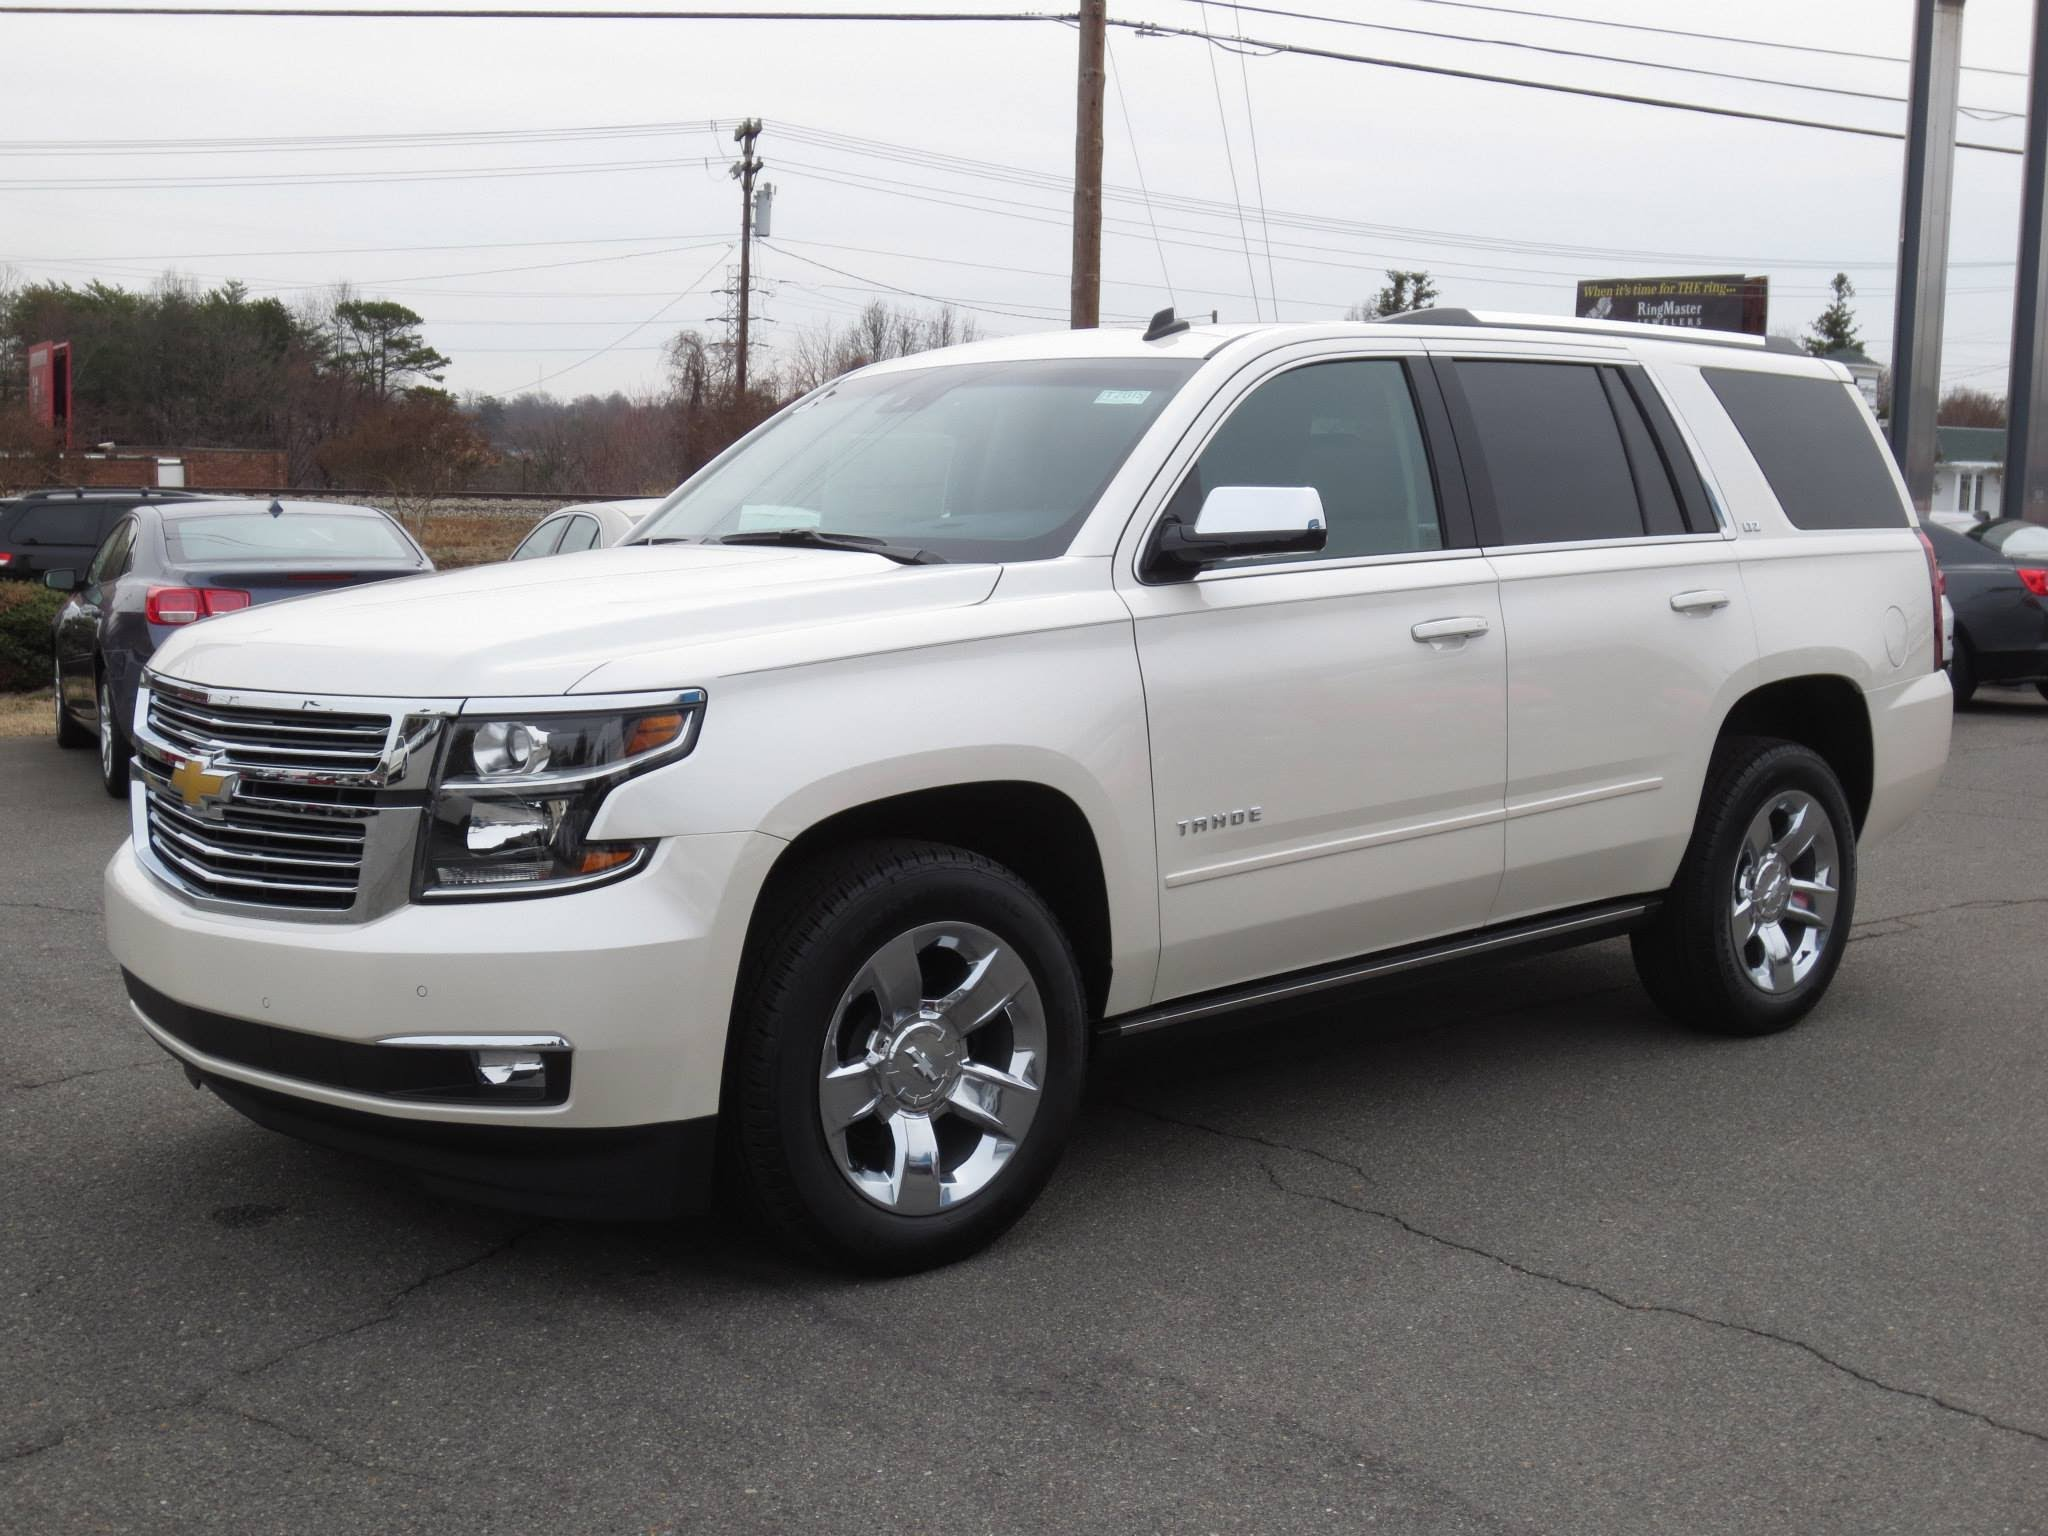 Chevrolet Tahoe 4 Widescreen for desktop